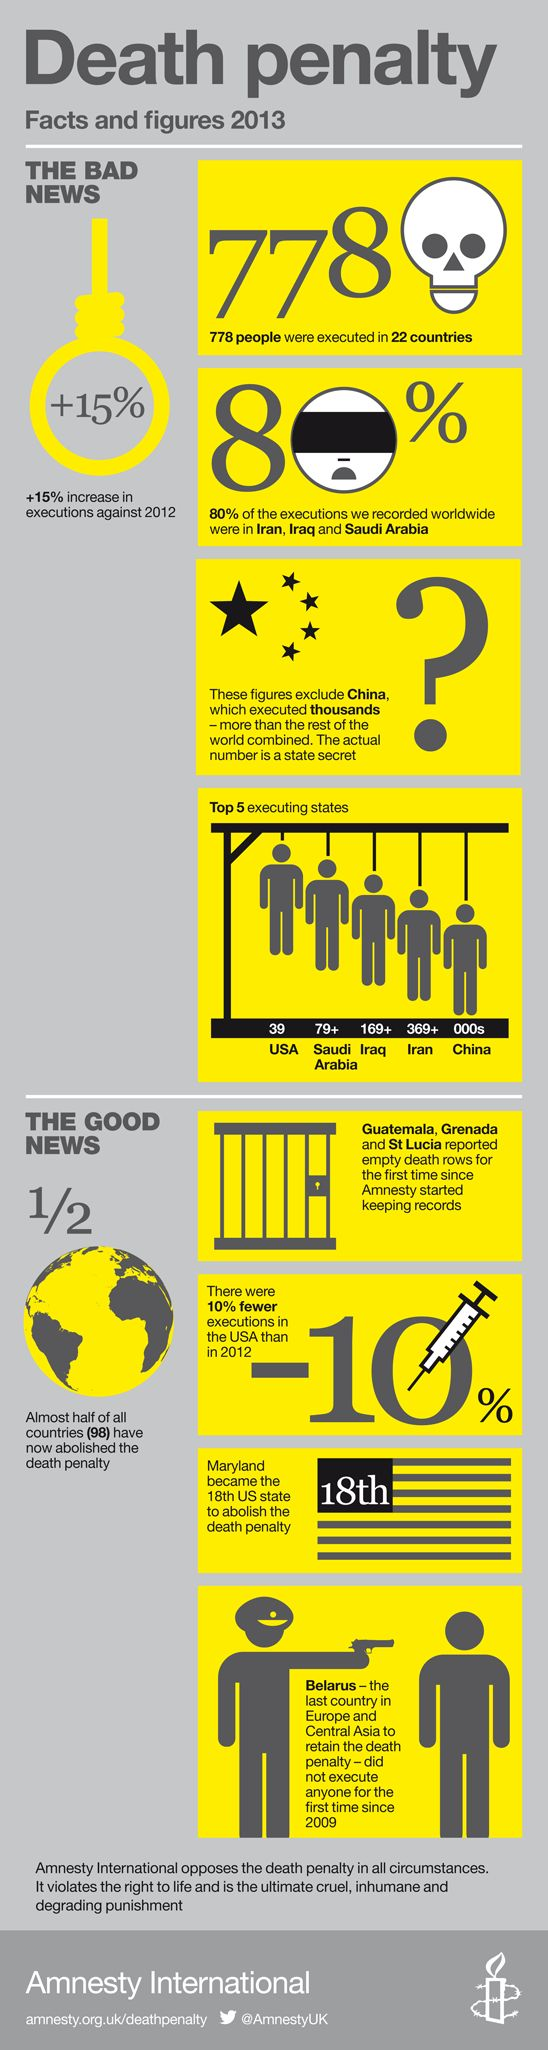 17 best ideas about arguments against death penalty arguments against death penalty the death penalty in 2013